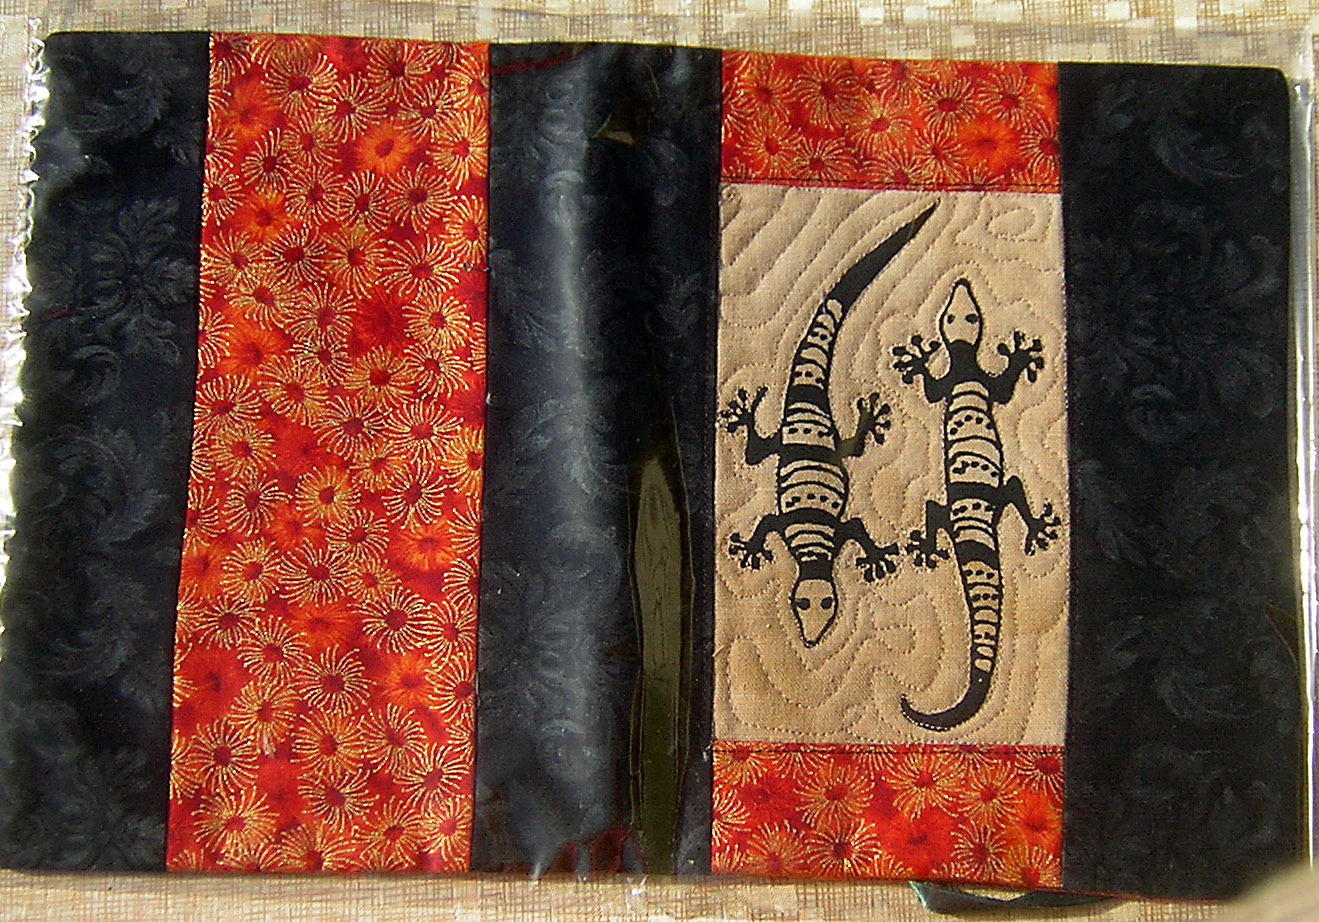 Gecko Journal Cover - opened